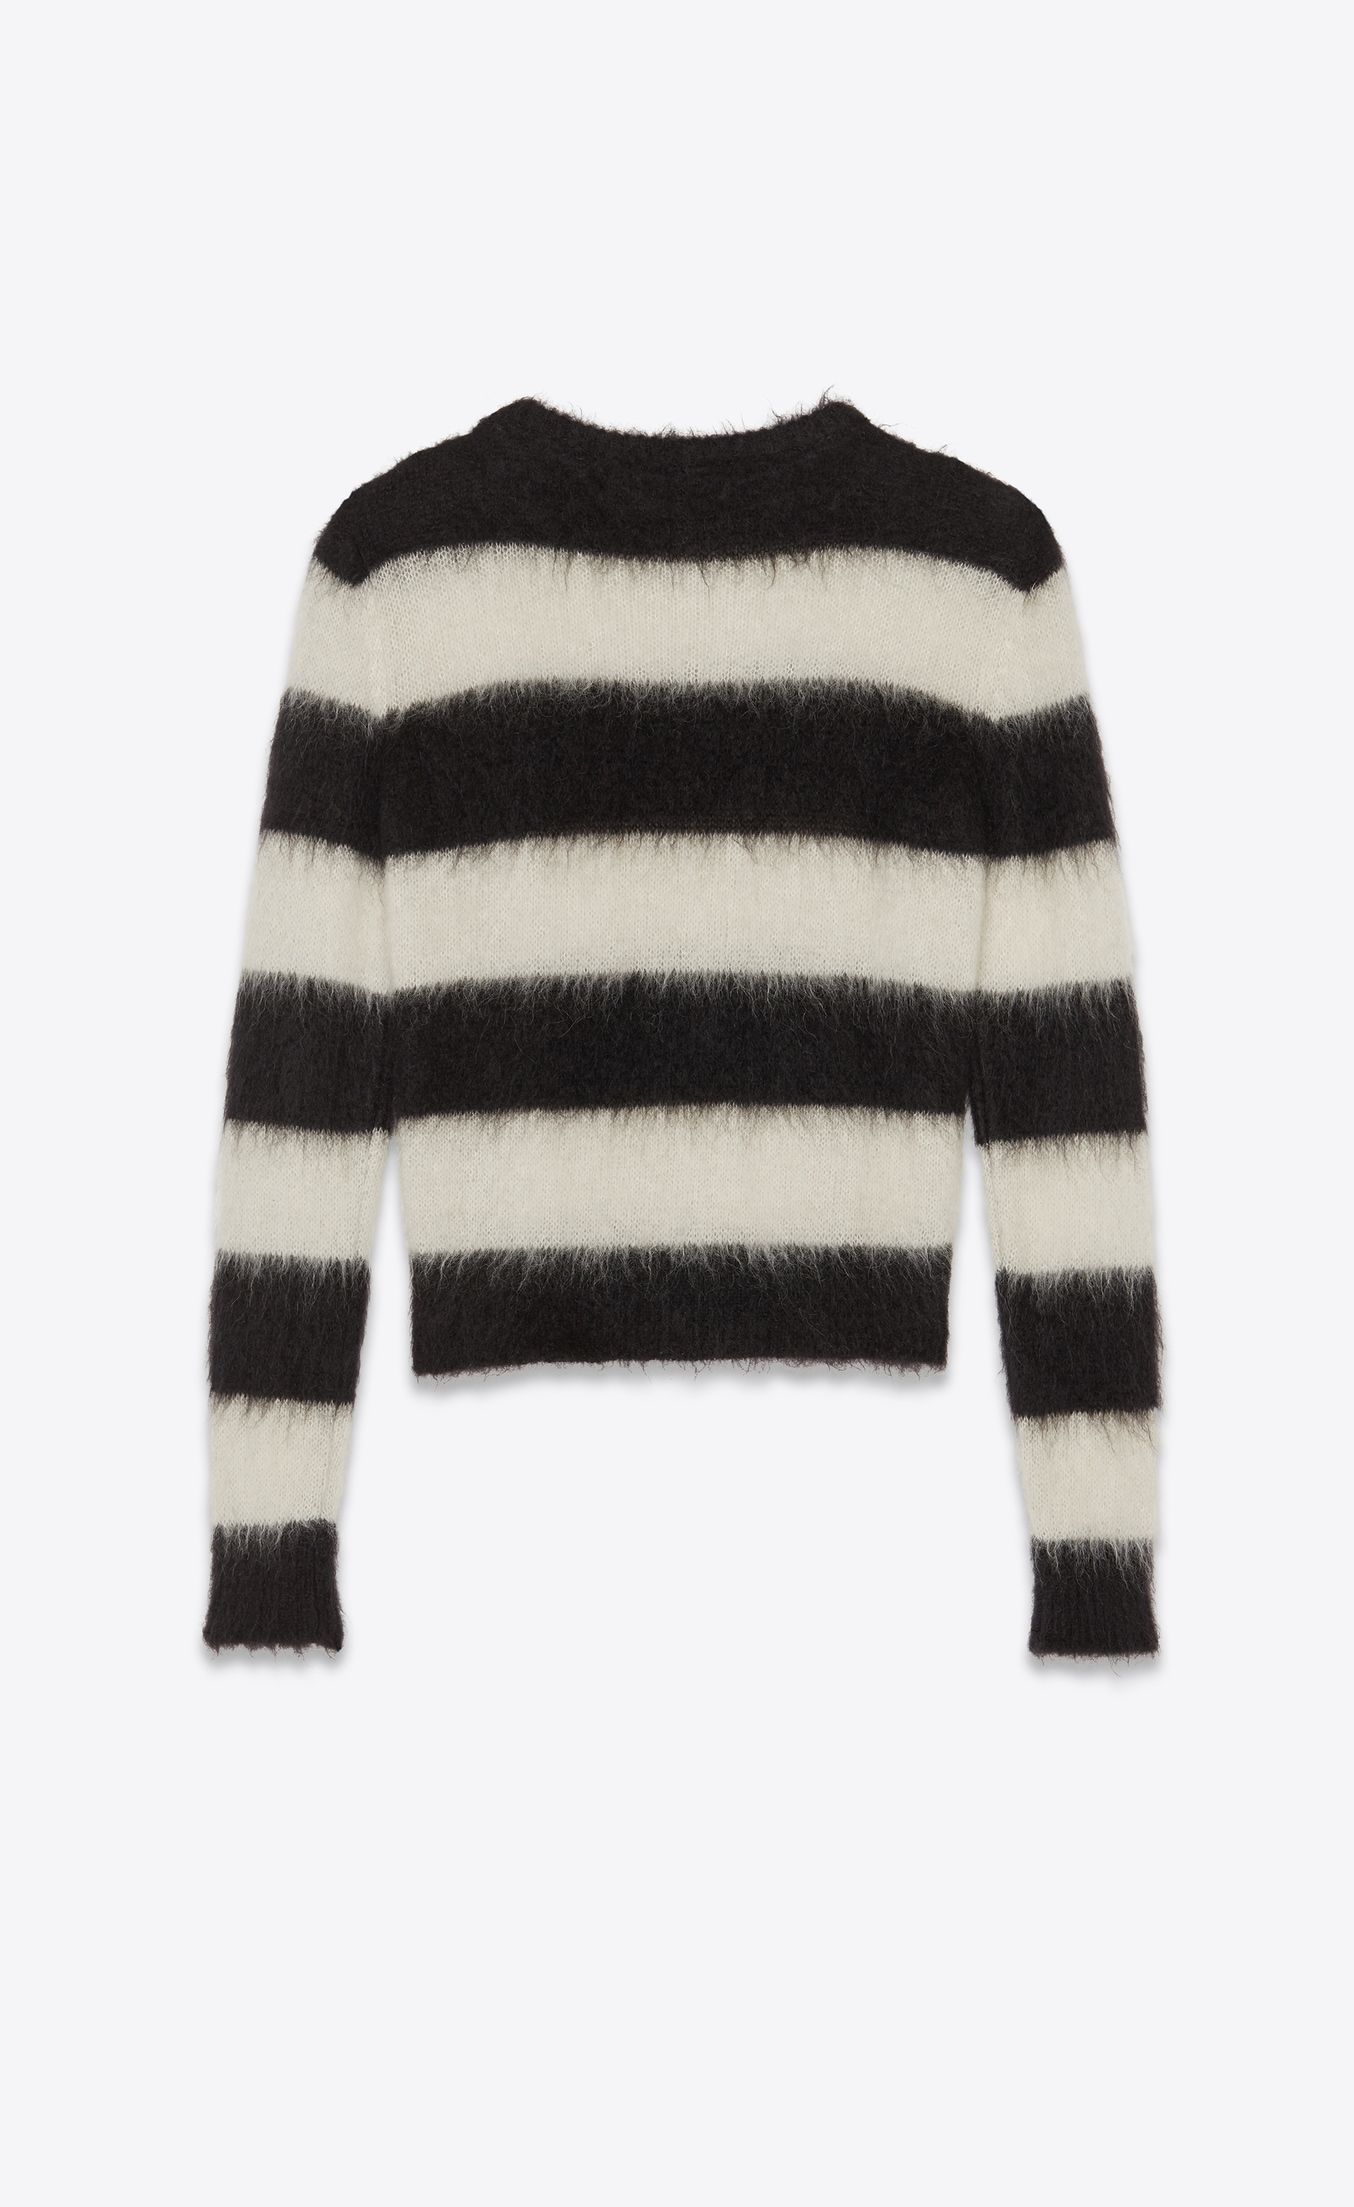 dcb3b9363a0a Yves Saint Laurent Paris Striped Sweater in Black and White Mohair